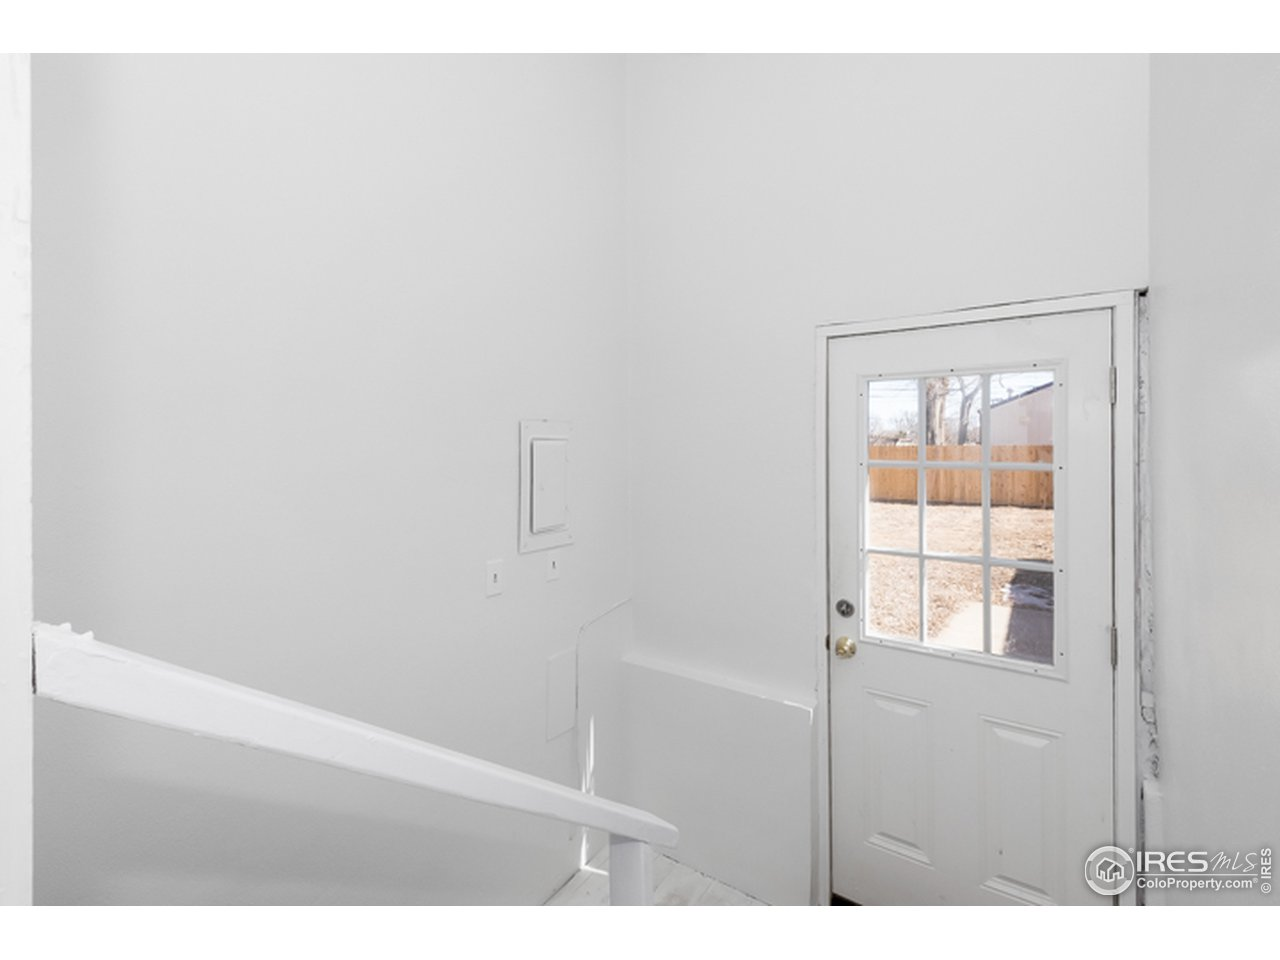 Back door leads to the shared laundry room